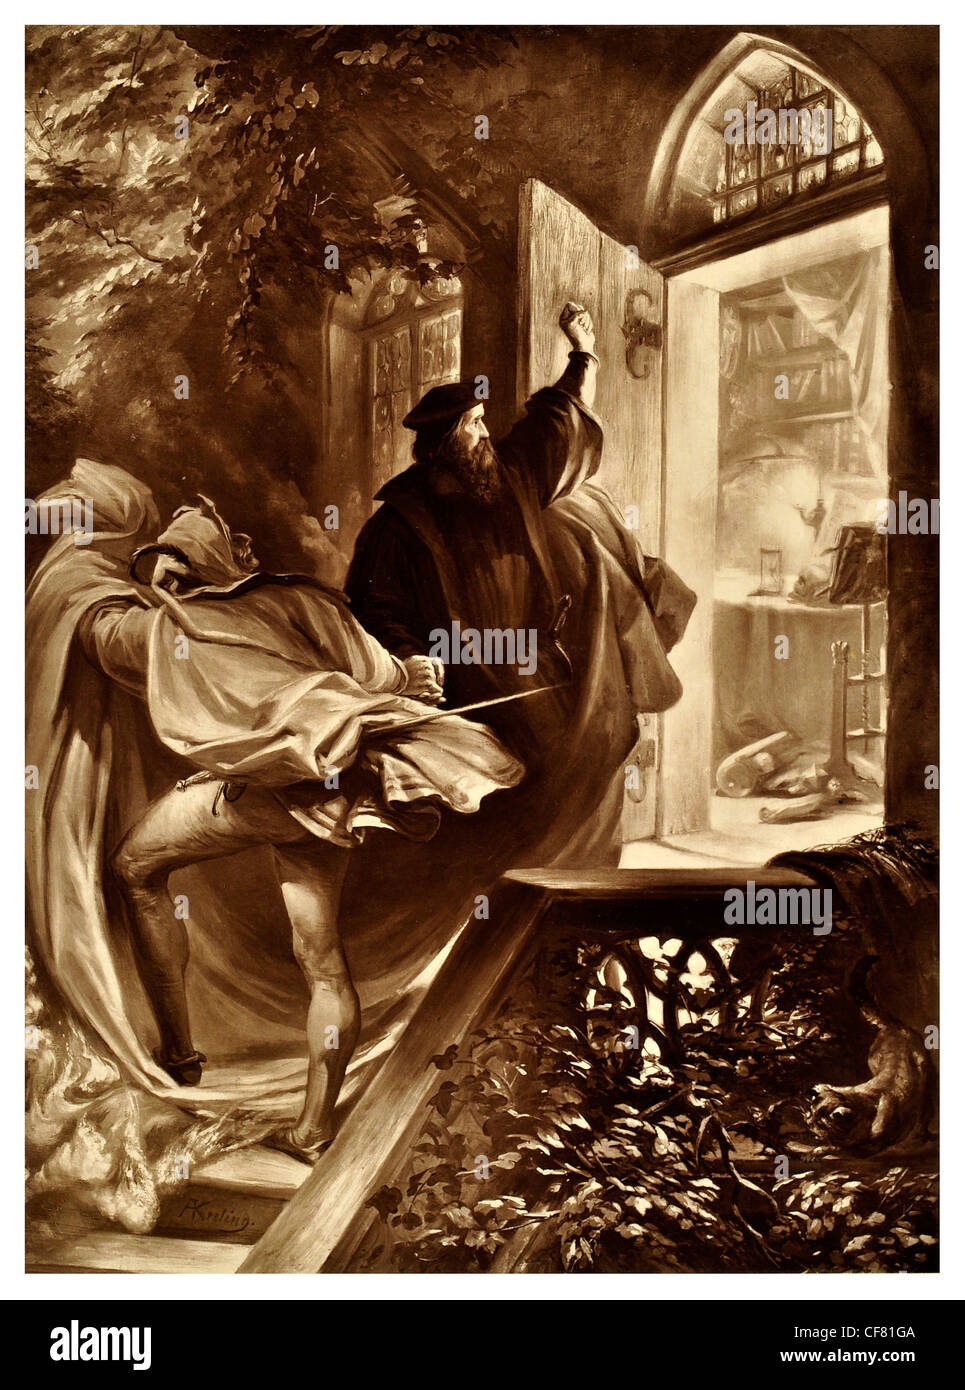 Faust  Johann Wolfgang von Goethe A tragedy 1870 period costume magical magic tale legend myth story drama theatre - Stock Image